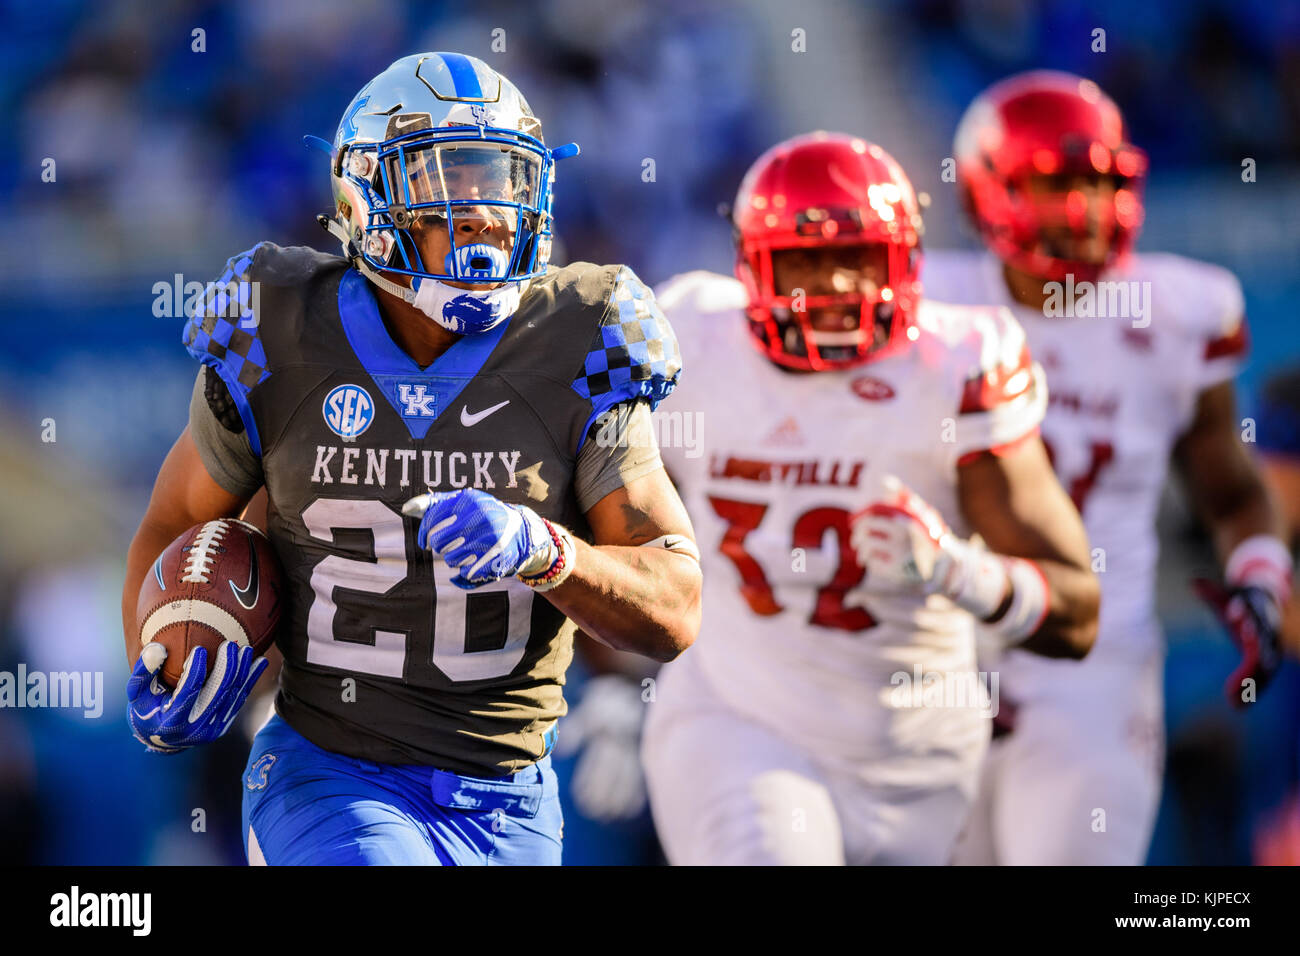 promo code ccc98 1f07a Kentucky running back Benny Snell Jr. (26) during the NCAA ...